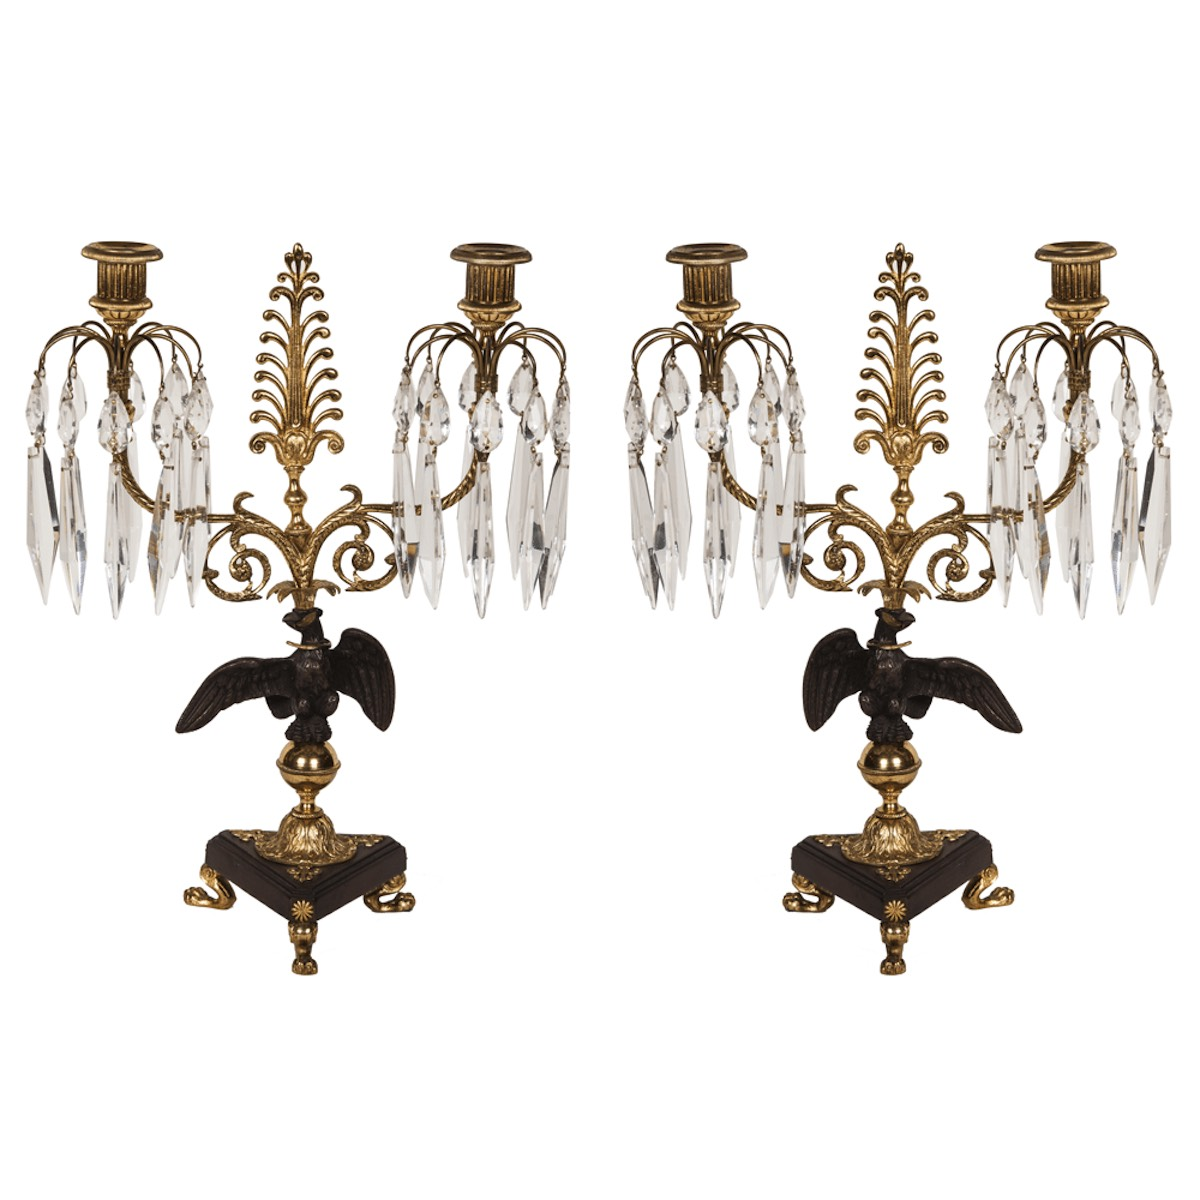 A pair of 1920's Ormolu and bronze Candelabra with Eagle and glass icicle drops